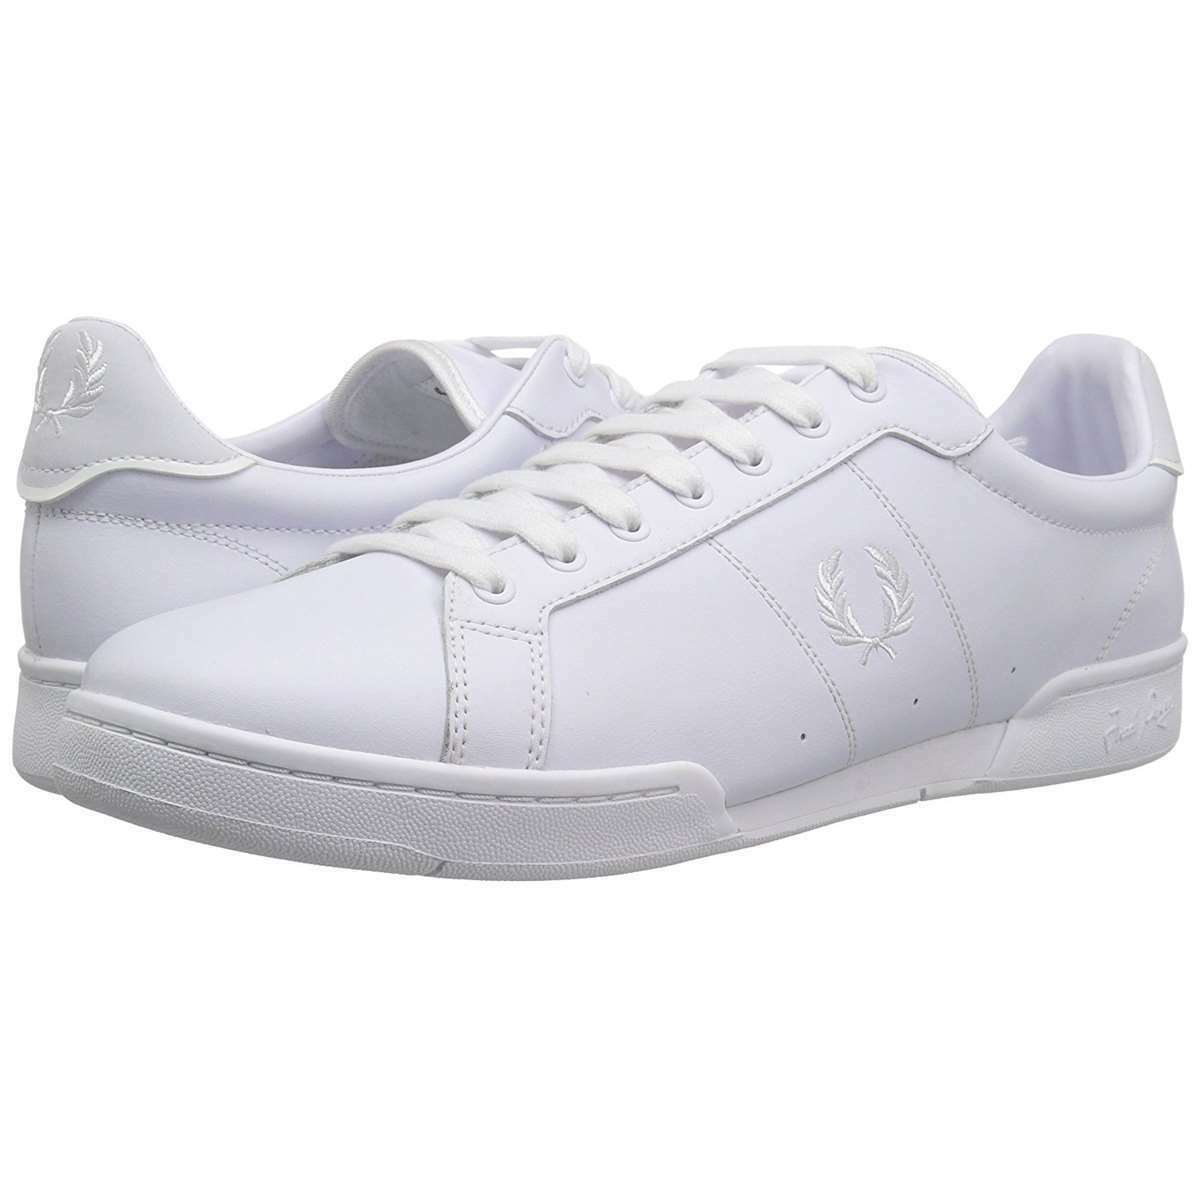 Fred Perry Men Casual shoes B722 Leather Sneakers White